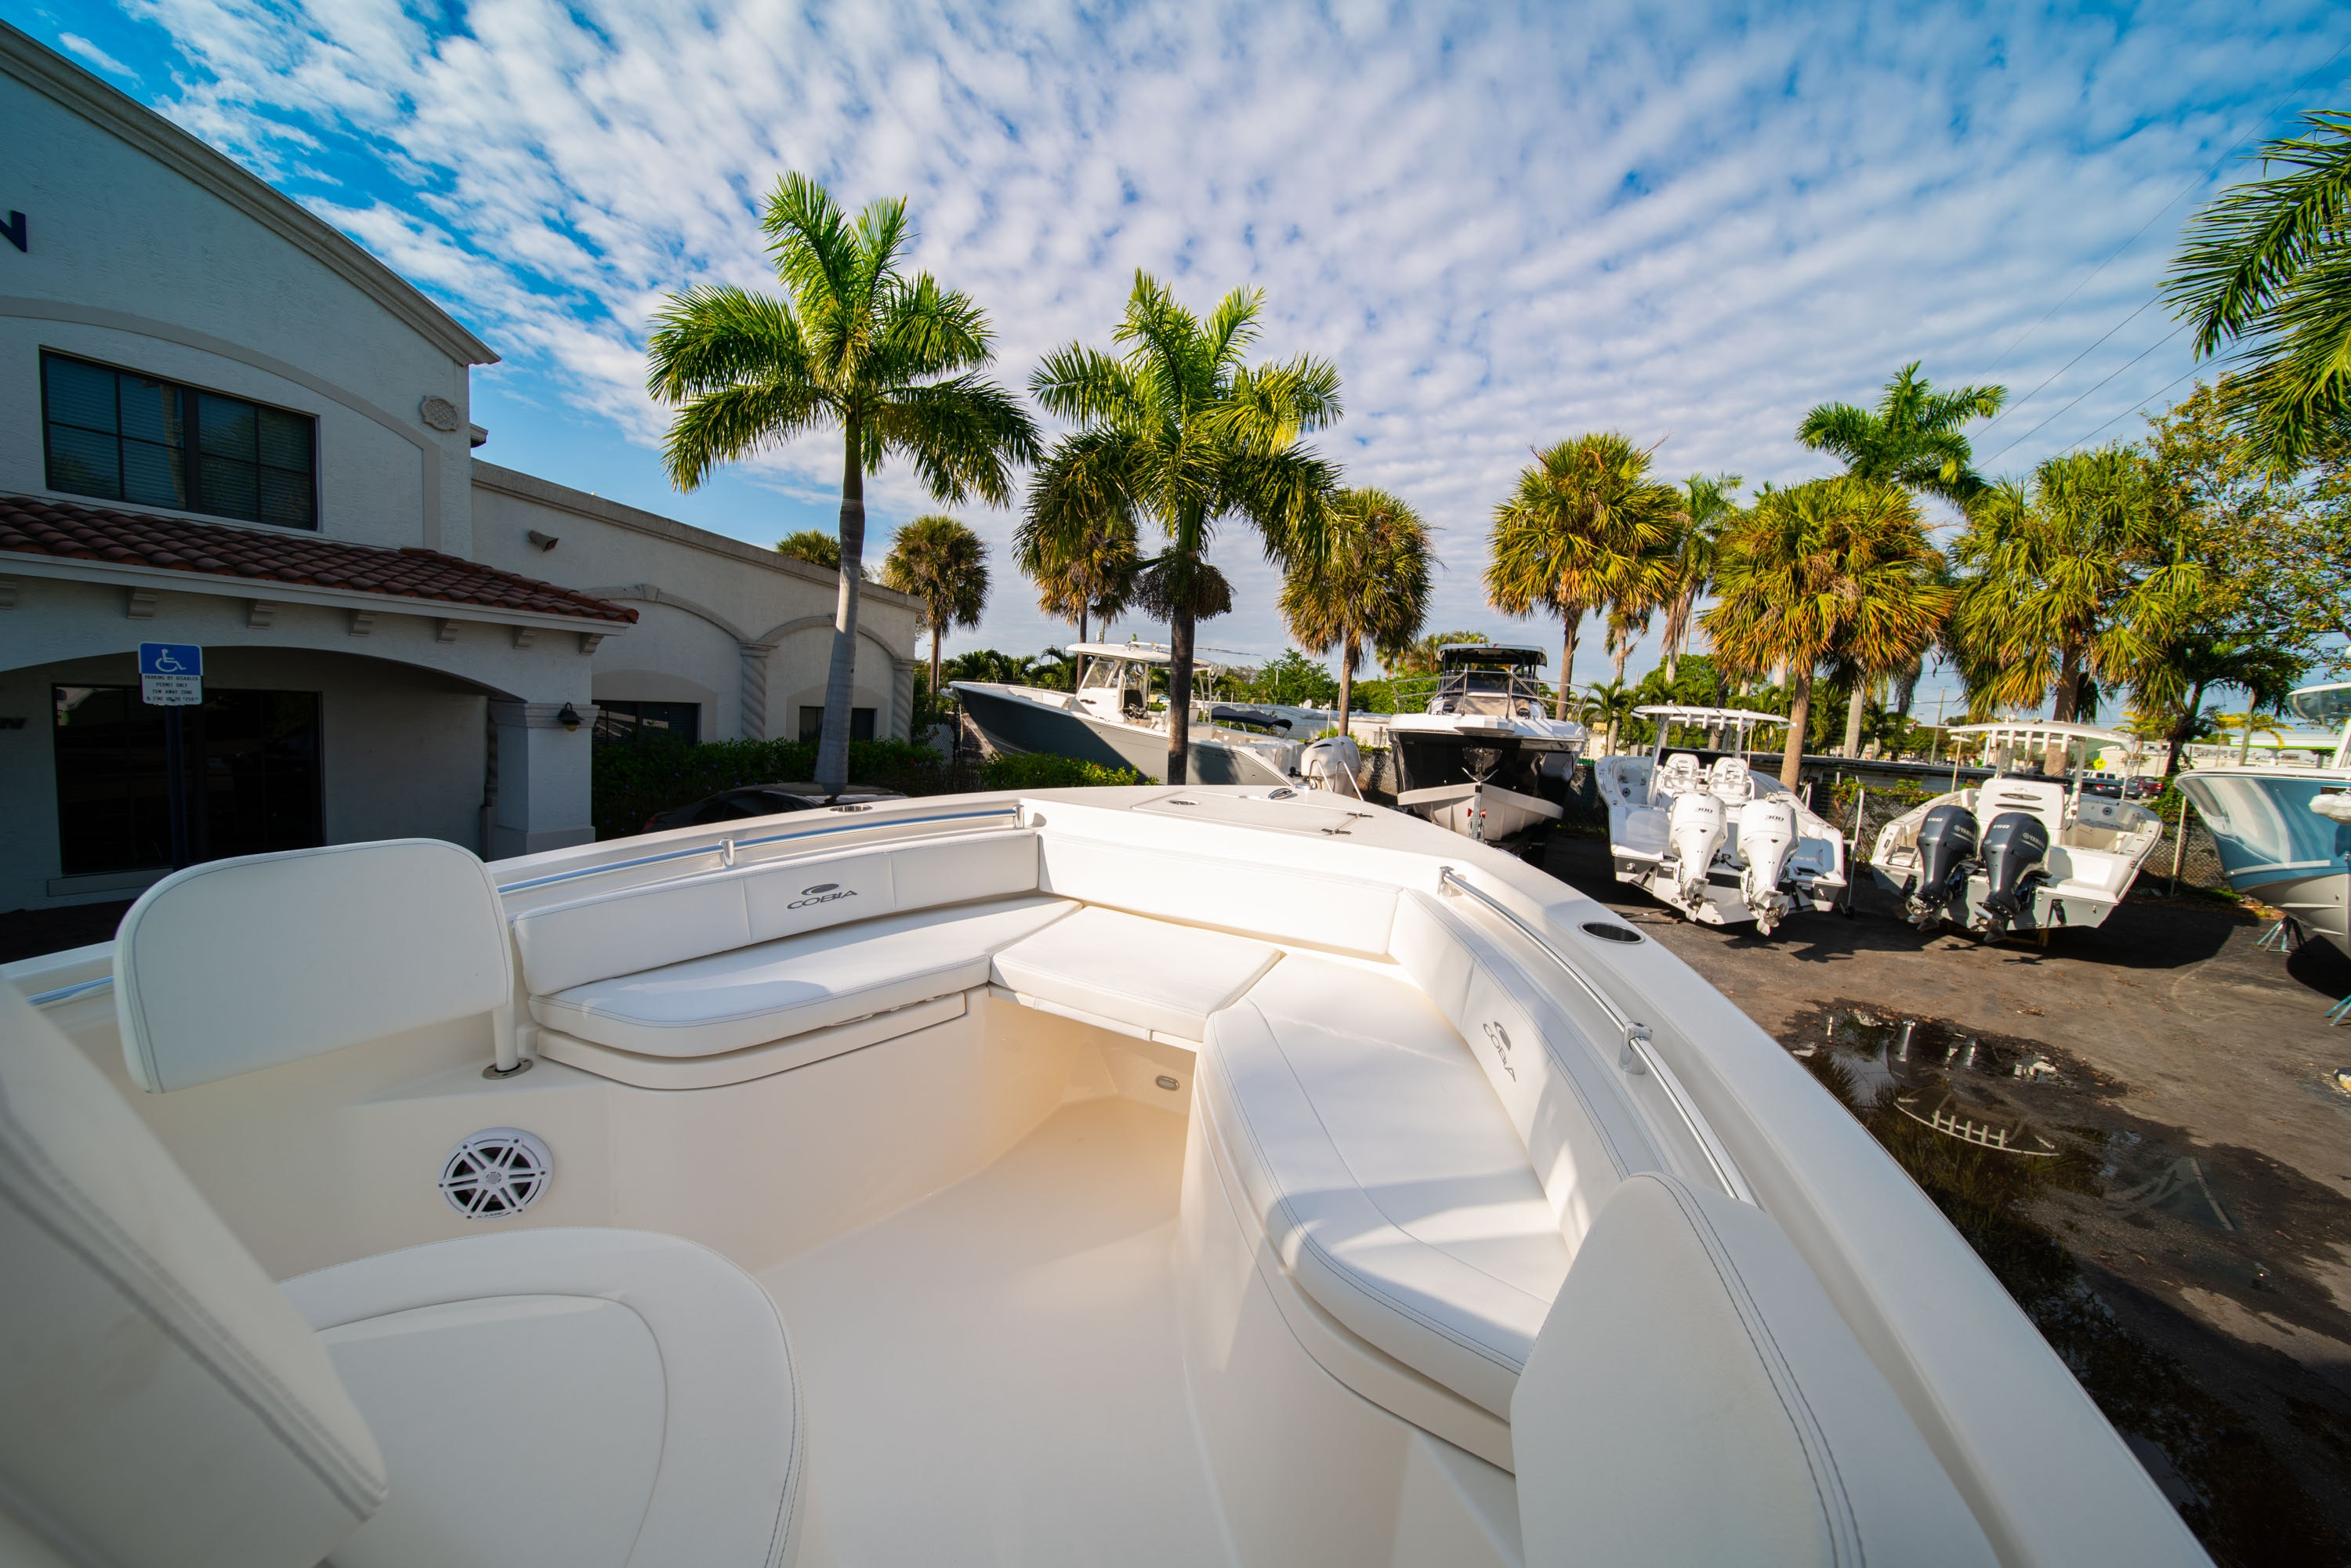 Thumbnail 32 for New 2020 Cobia 220 CC boat for sale in West Palm Beach, FL